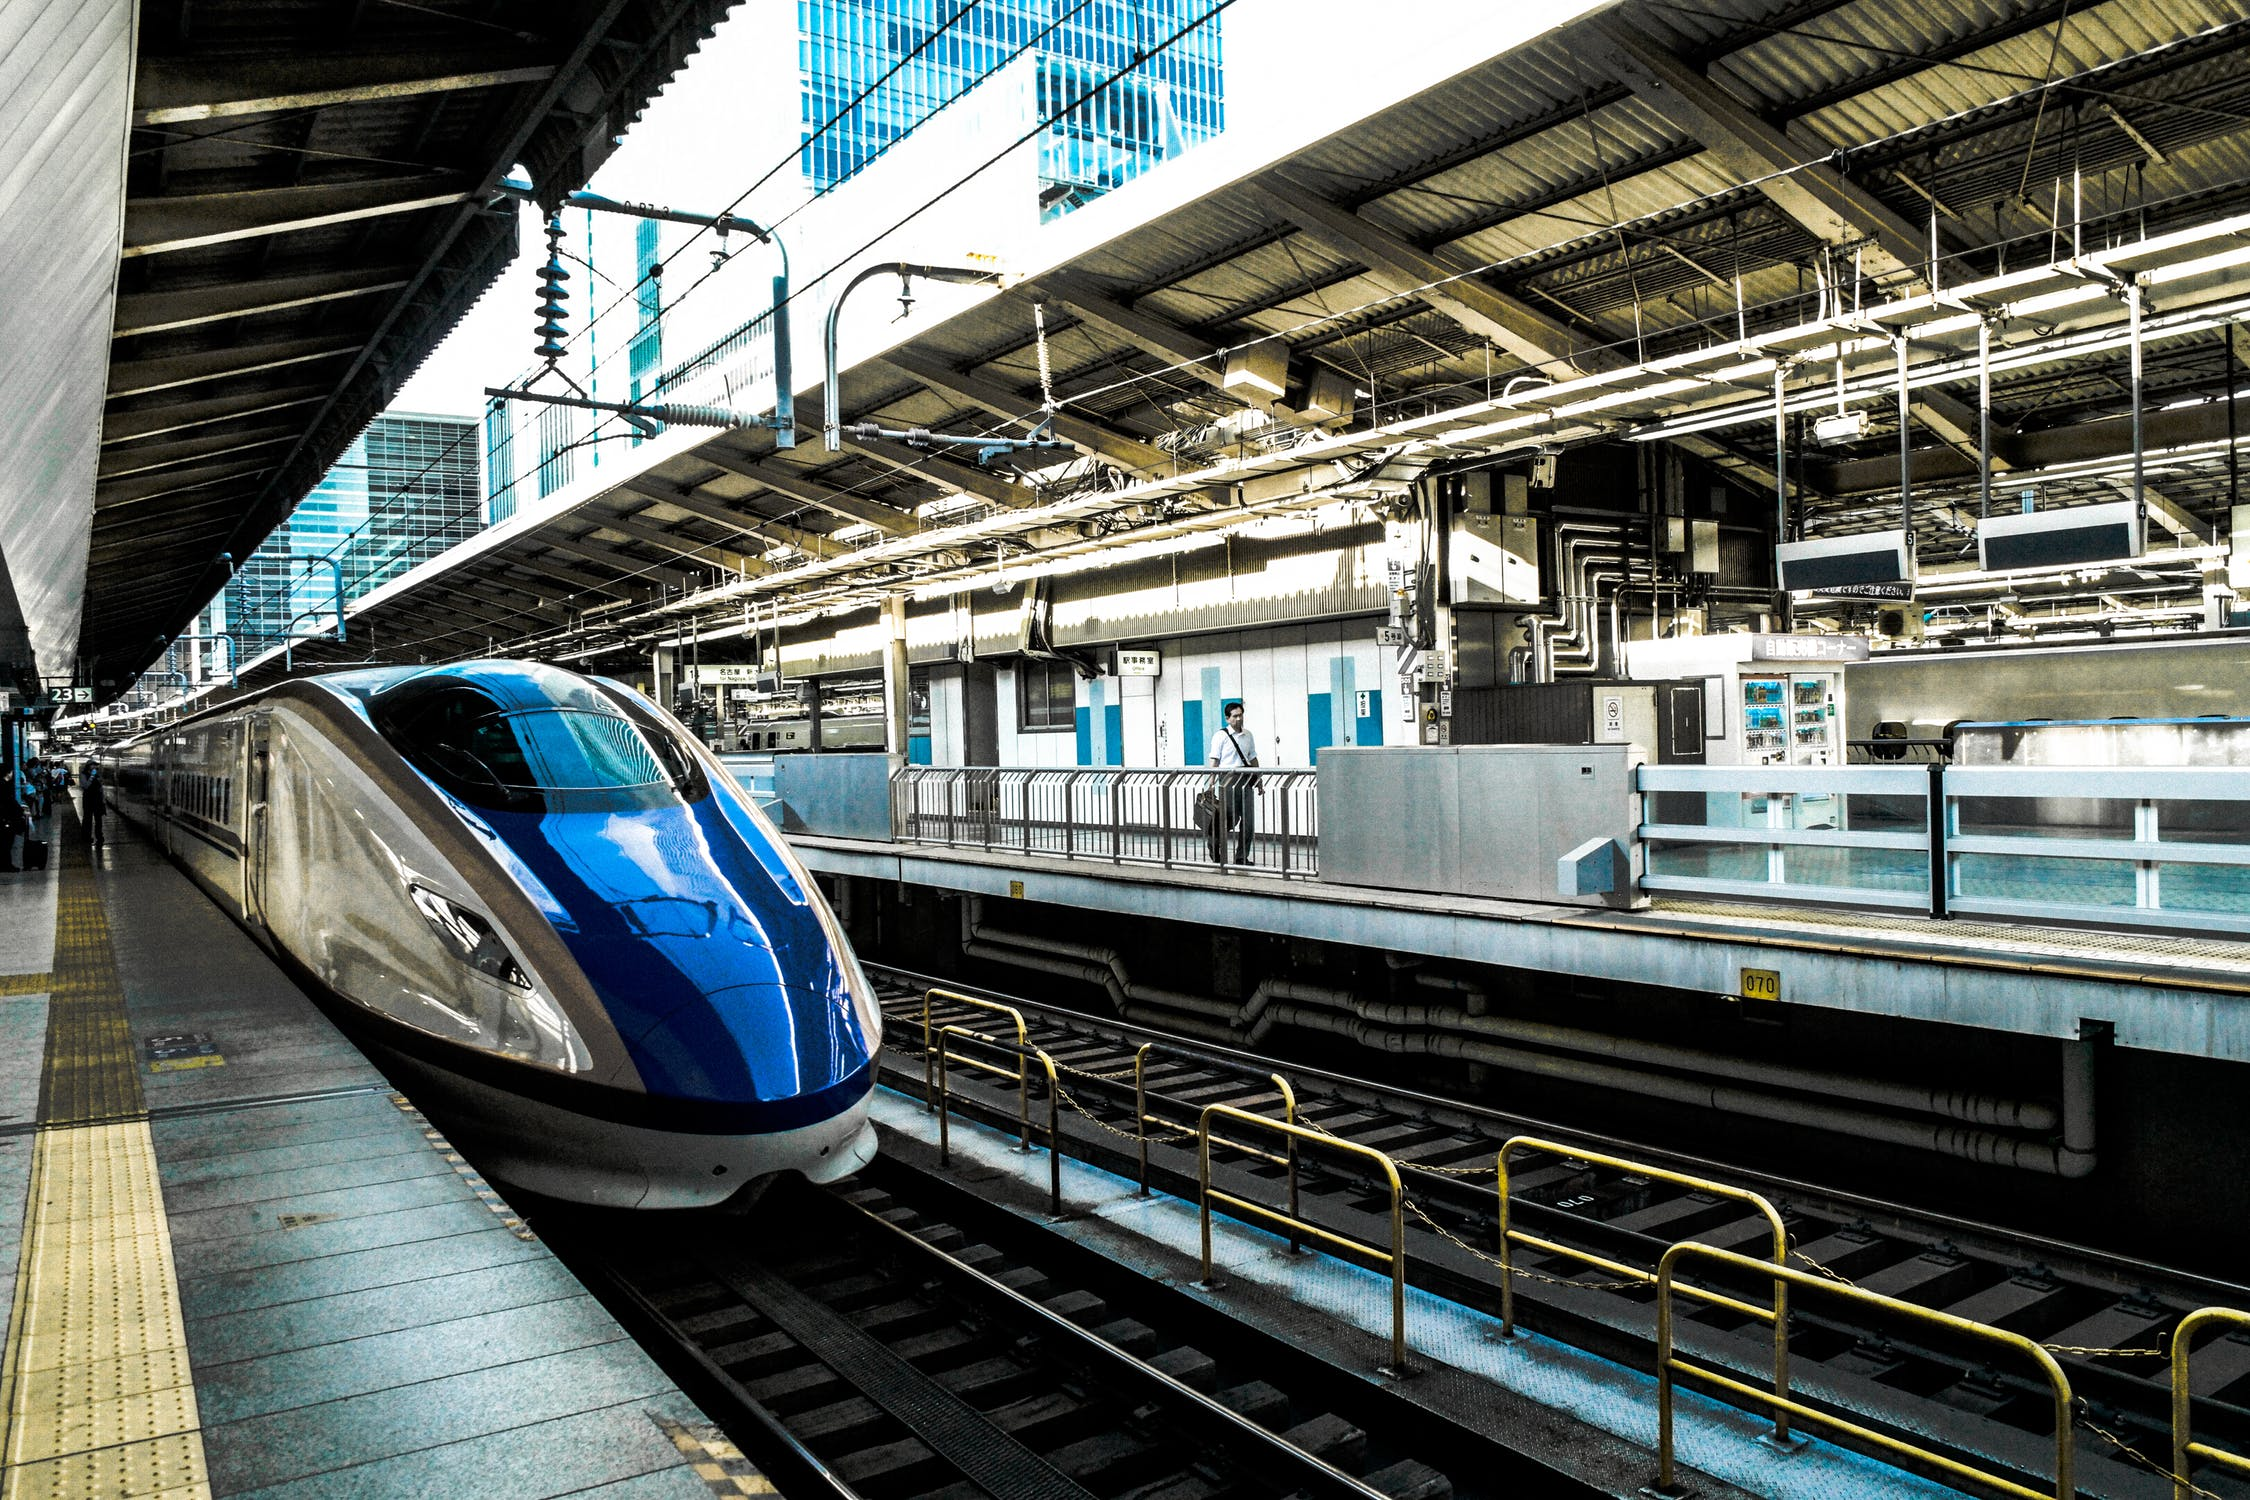 The Growing Demand for Improved Railway Technology